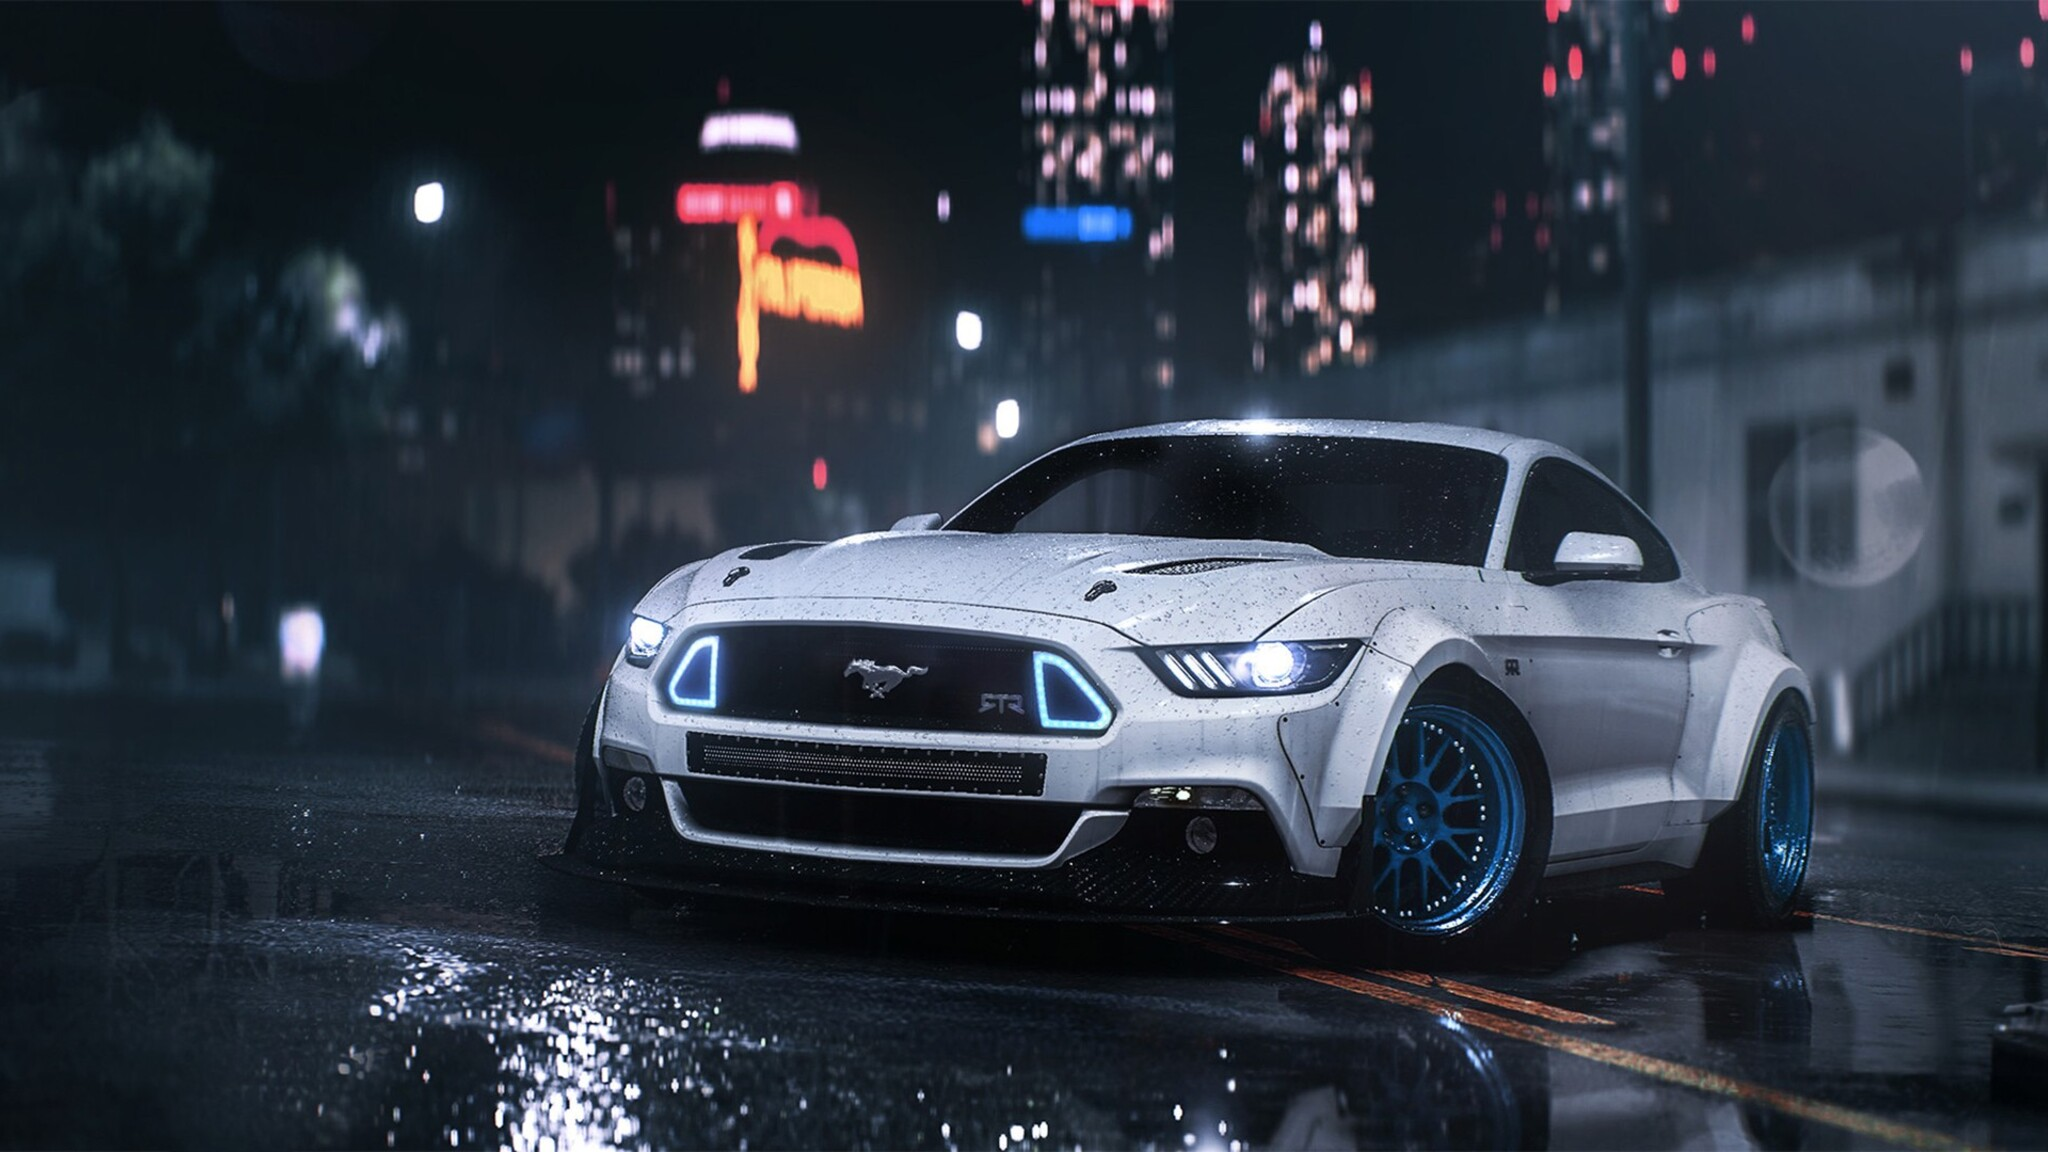 Hd Wallpapers Cars Mustang 2048x1152 Need For Speed Mustang 2048x1152 Resolution Hd